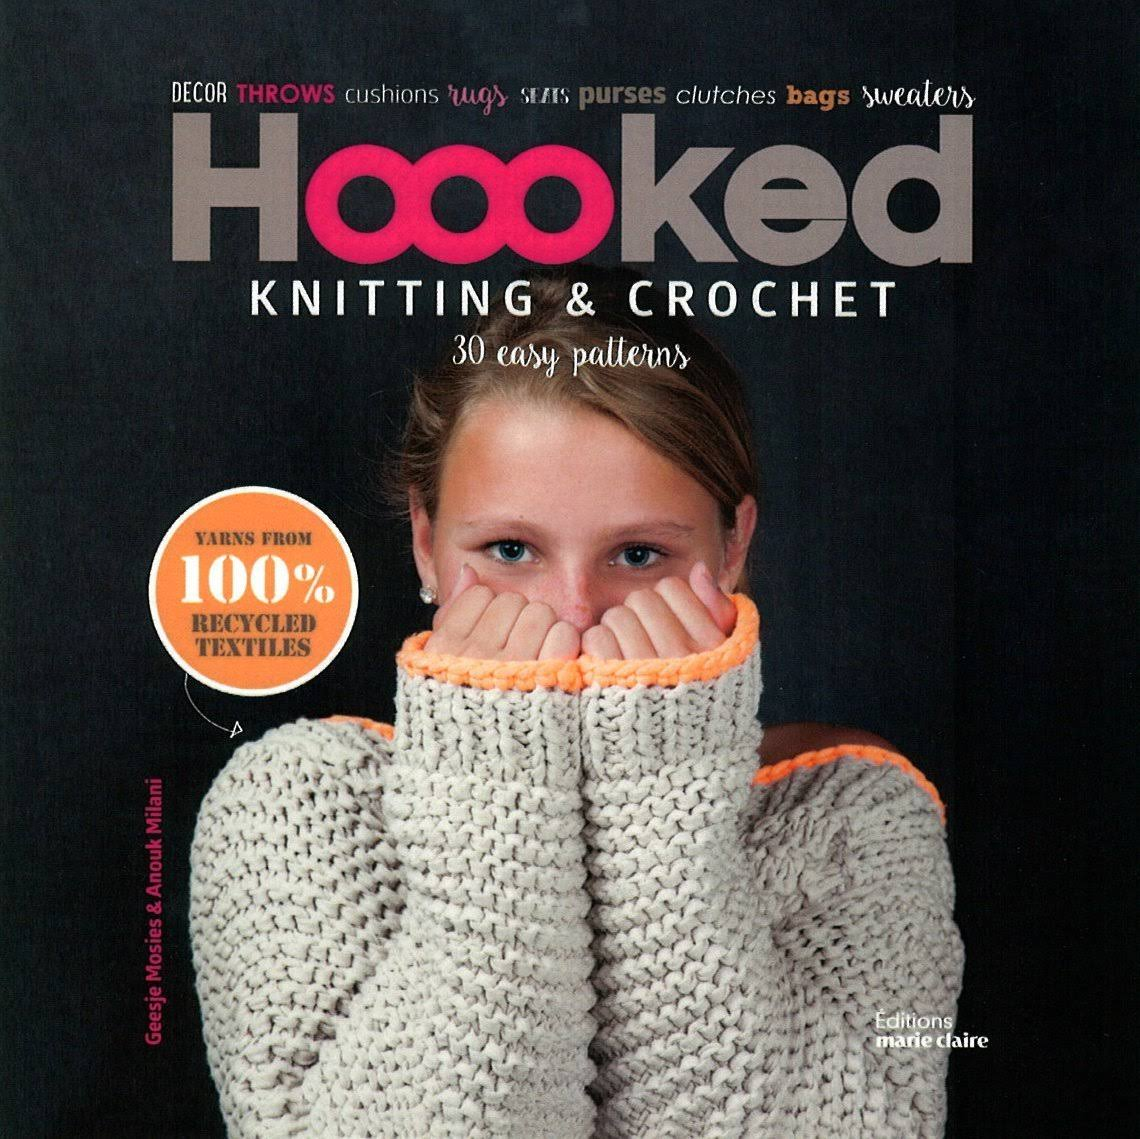 Hoooked Knitting and Crochet - Geesje Mosies and Anouk Milani